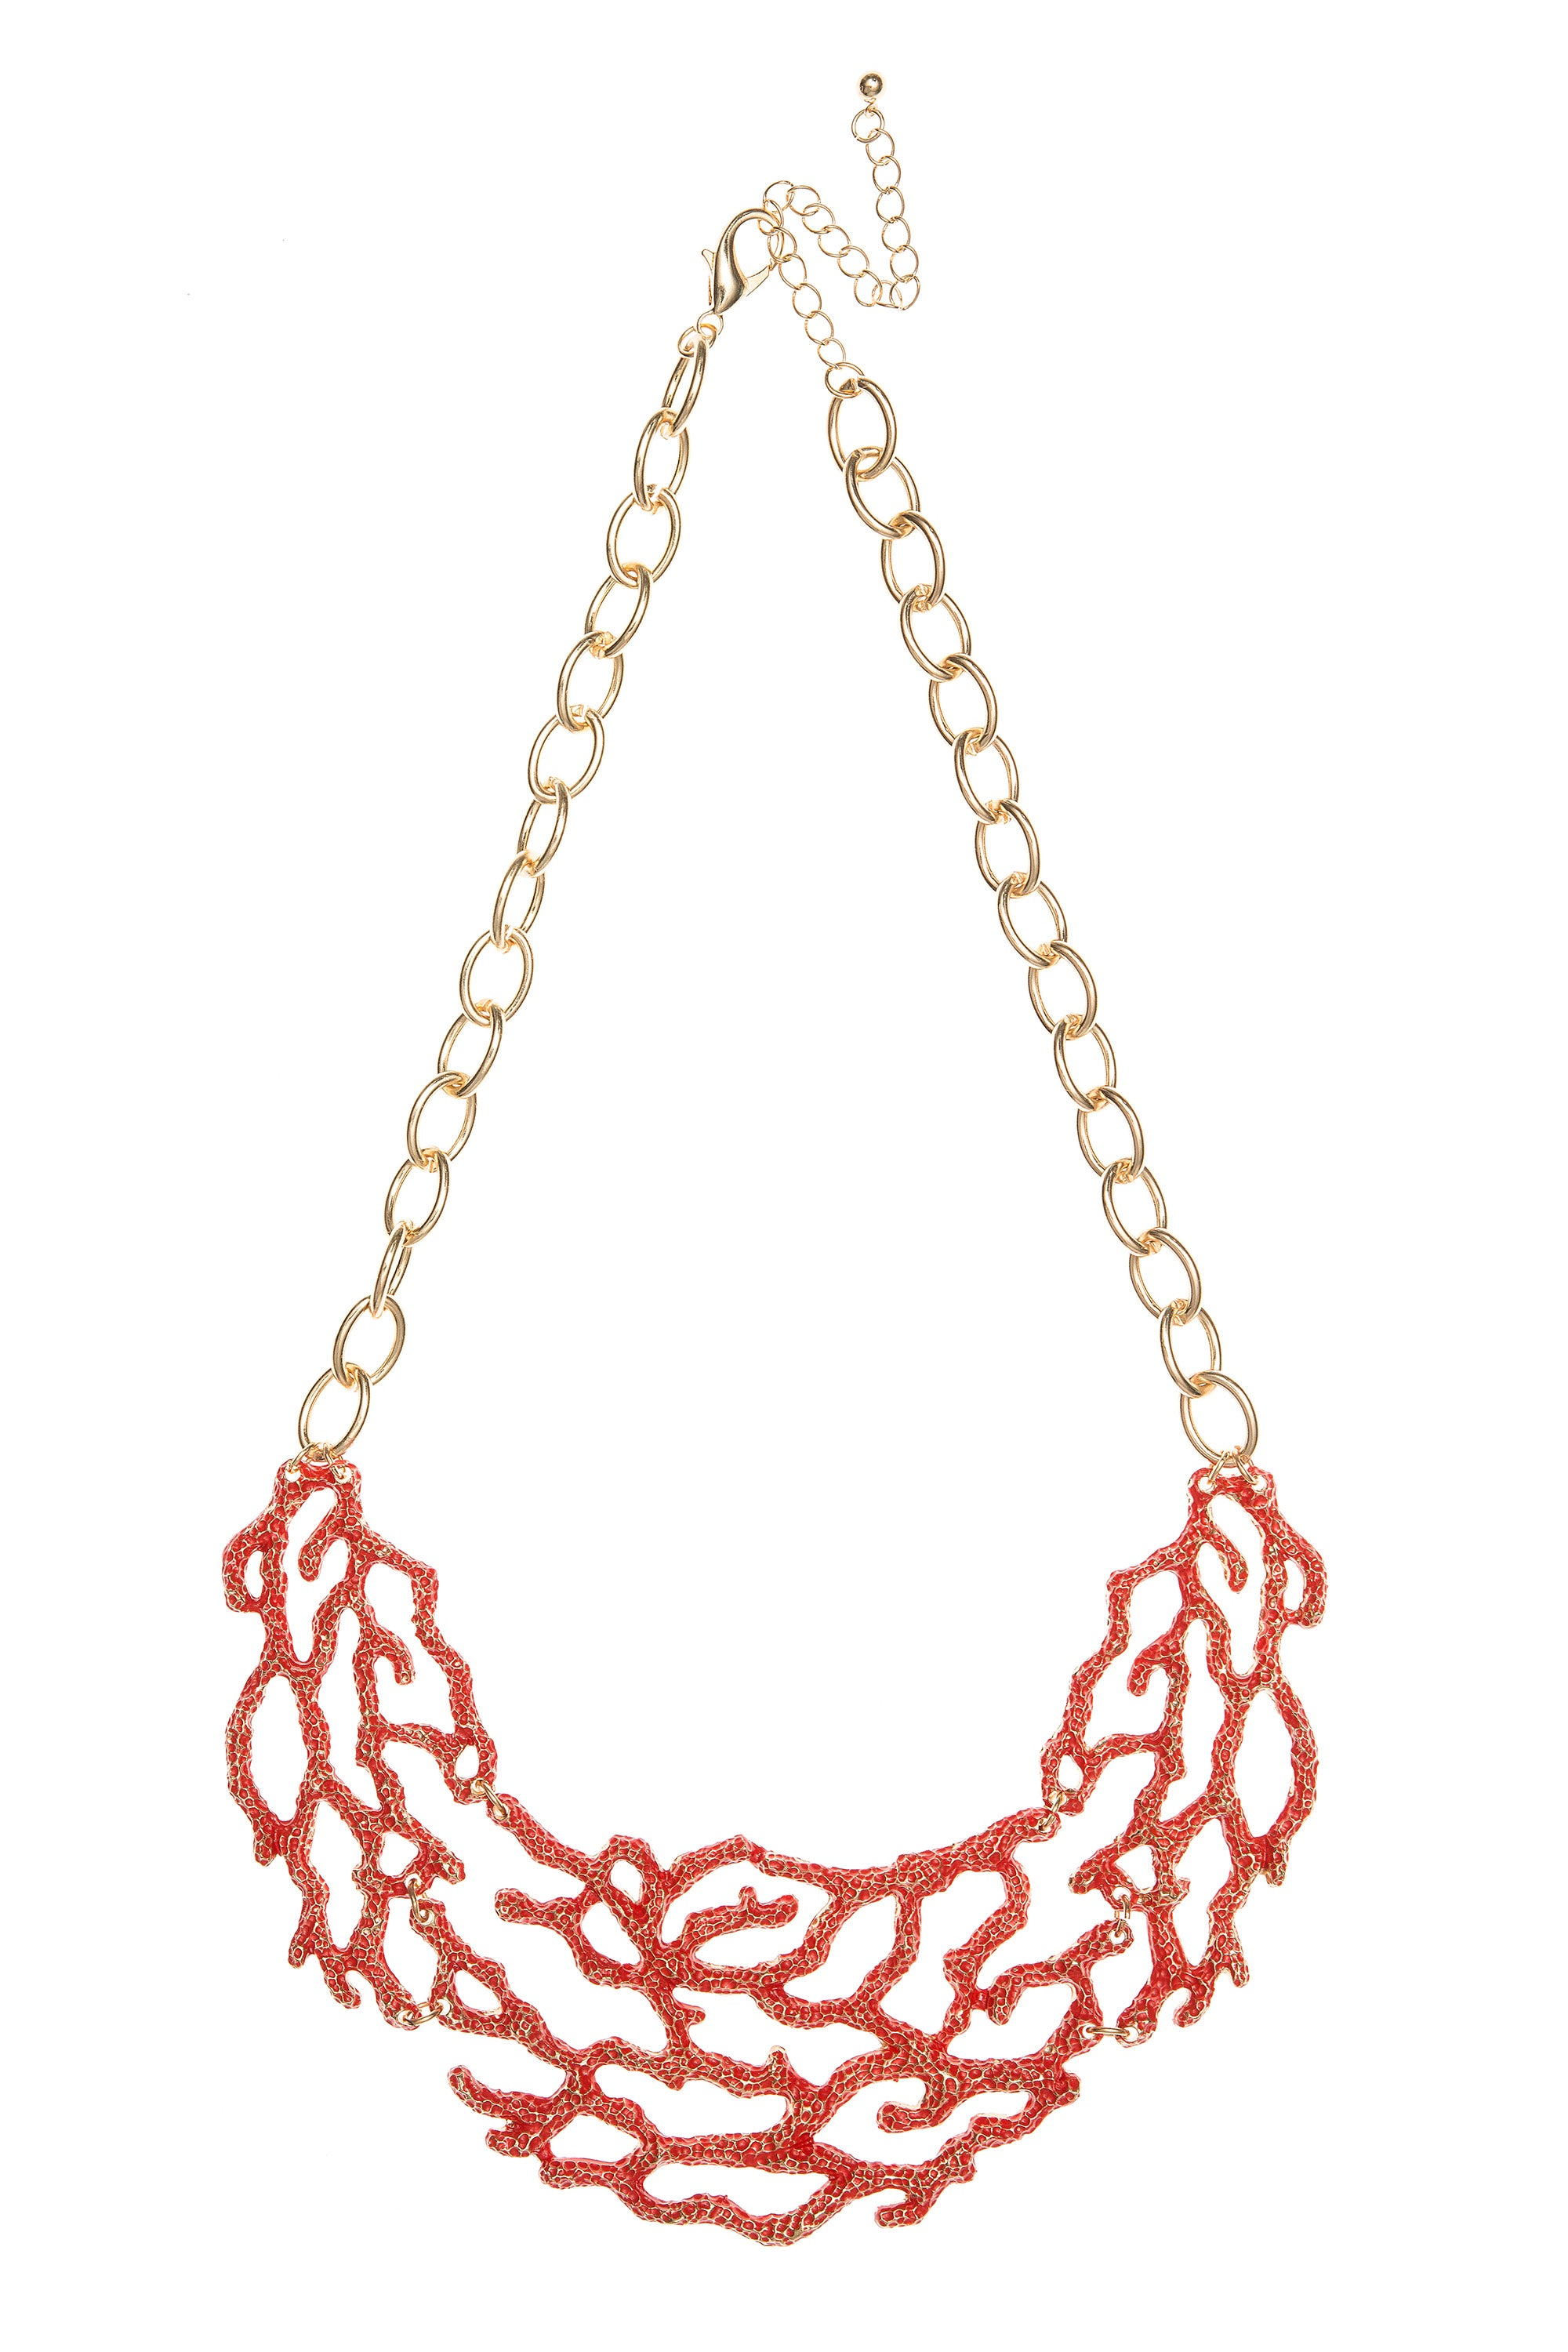 Type 3 Coral Reef Necklace